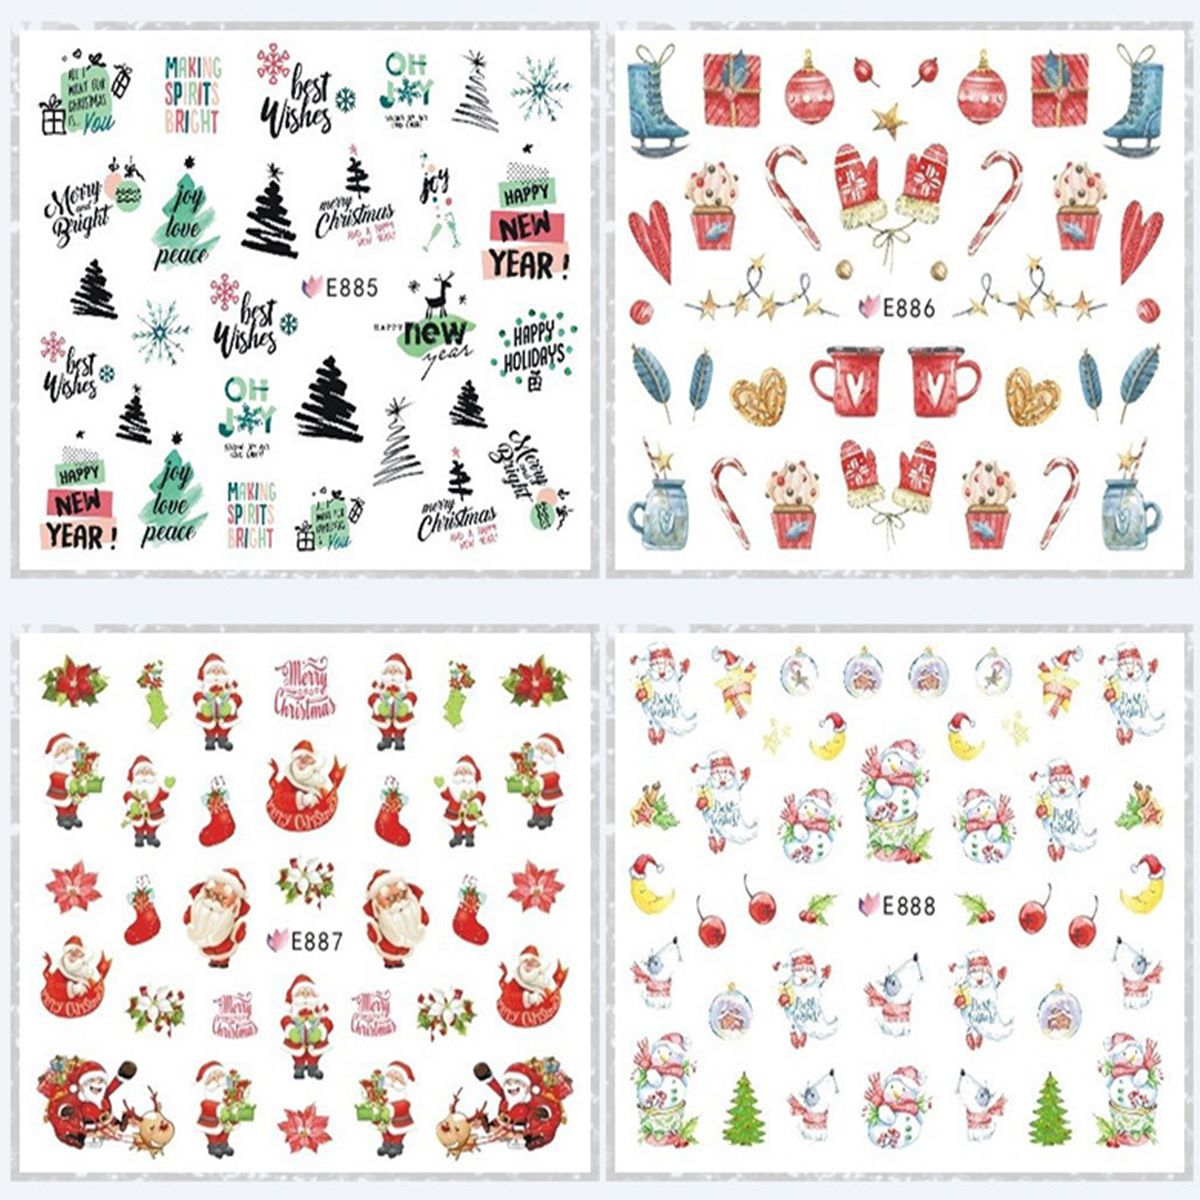 E875-896 Series Stereo Suspender Strap Glue Nail Sticker Field Santa Claus Nail Sticker Christmas Manicure Flower Stickers